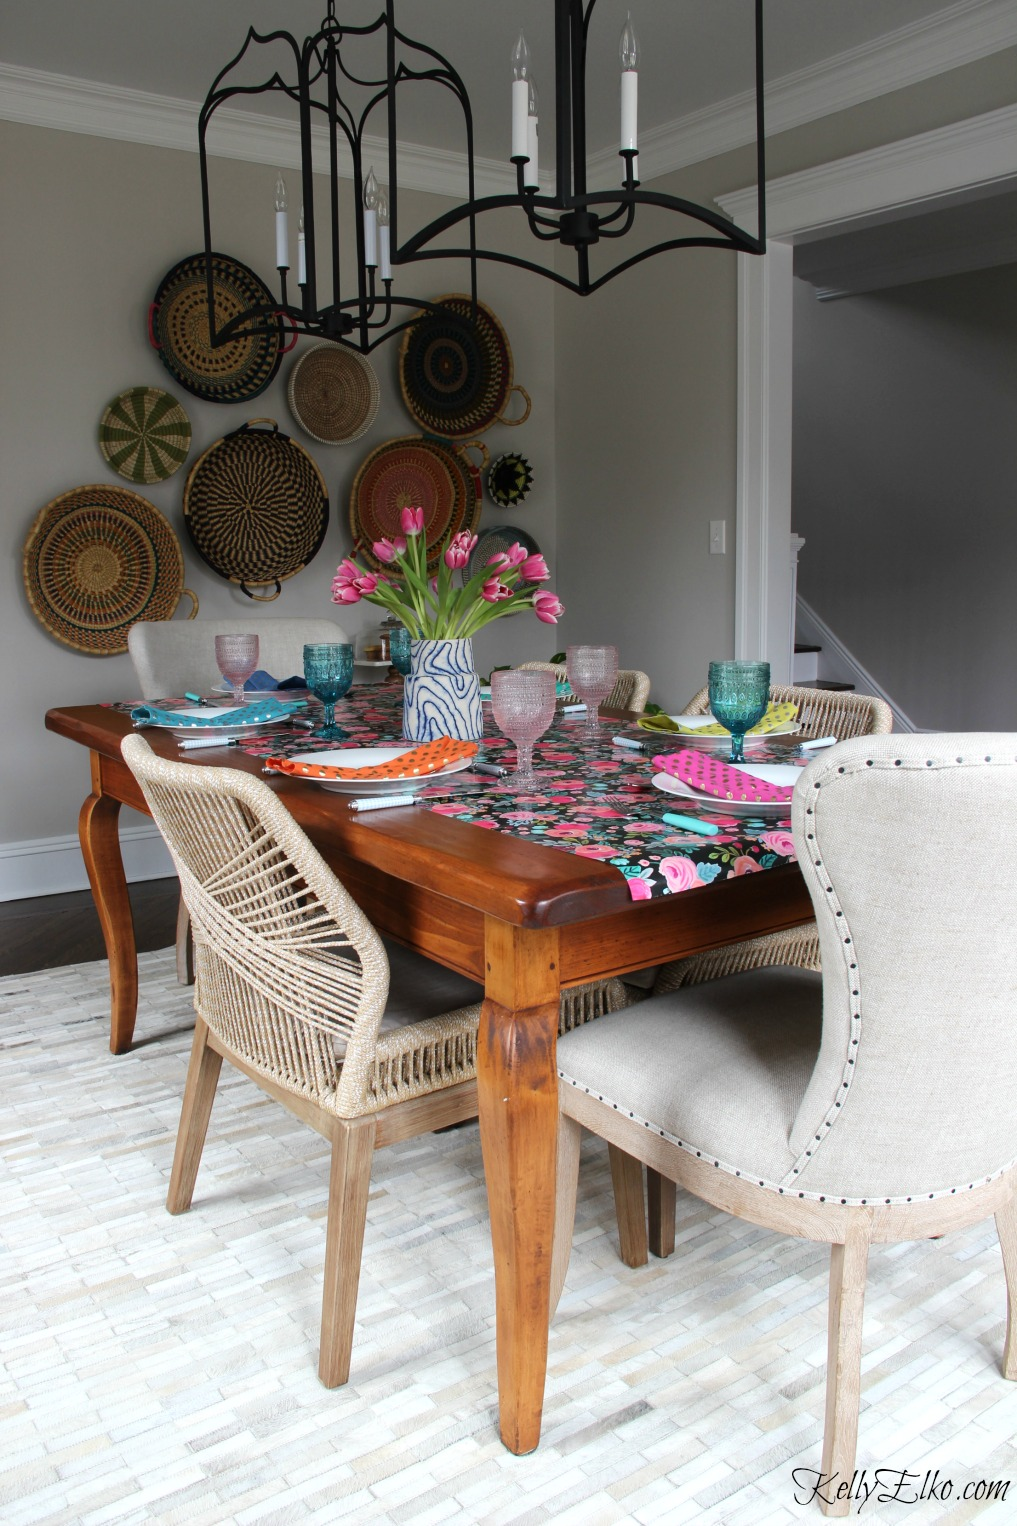 Spring table - love the graphic floral table runner with blue and pink glasses, colorful napkins and beautiful cowhide rug and rope chairs kellyelko.com